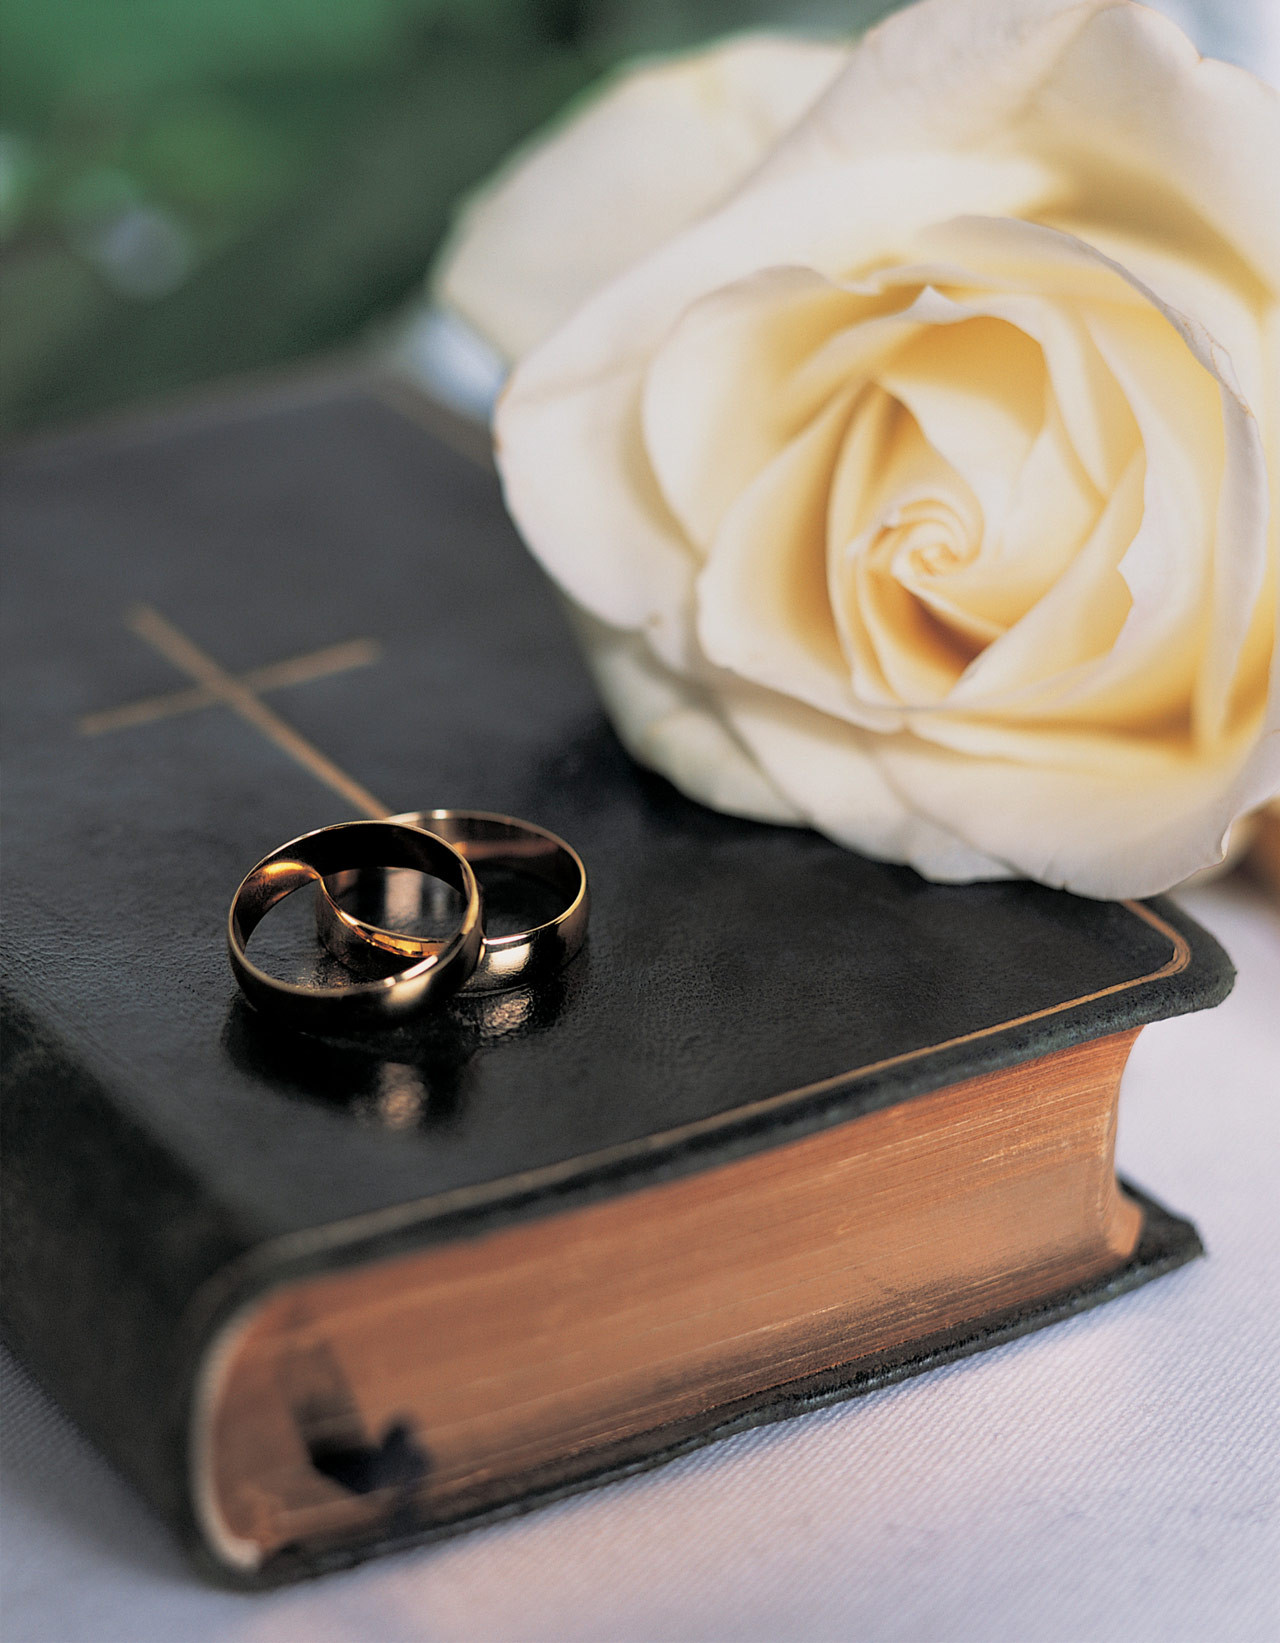 Solemnizing Marriages